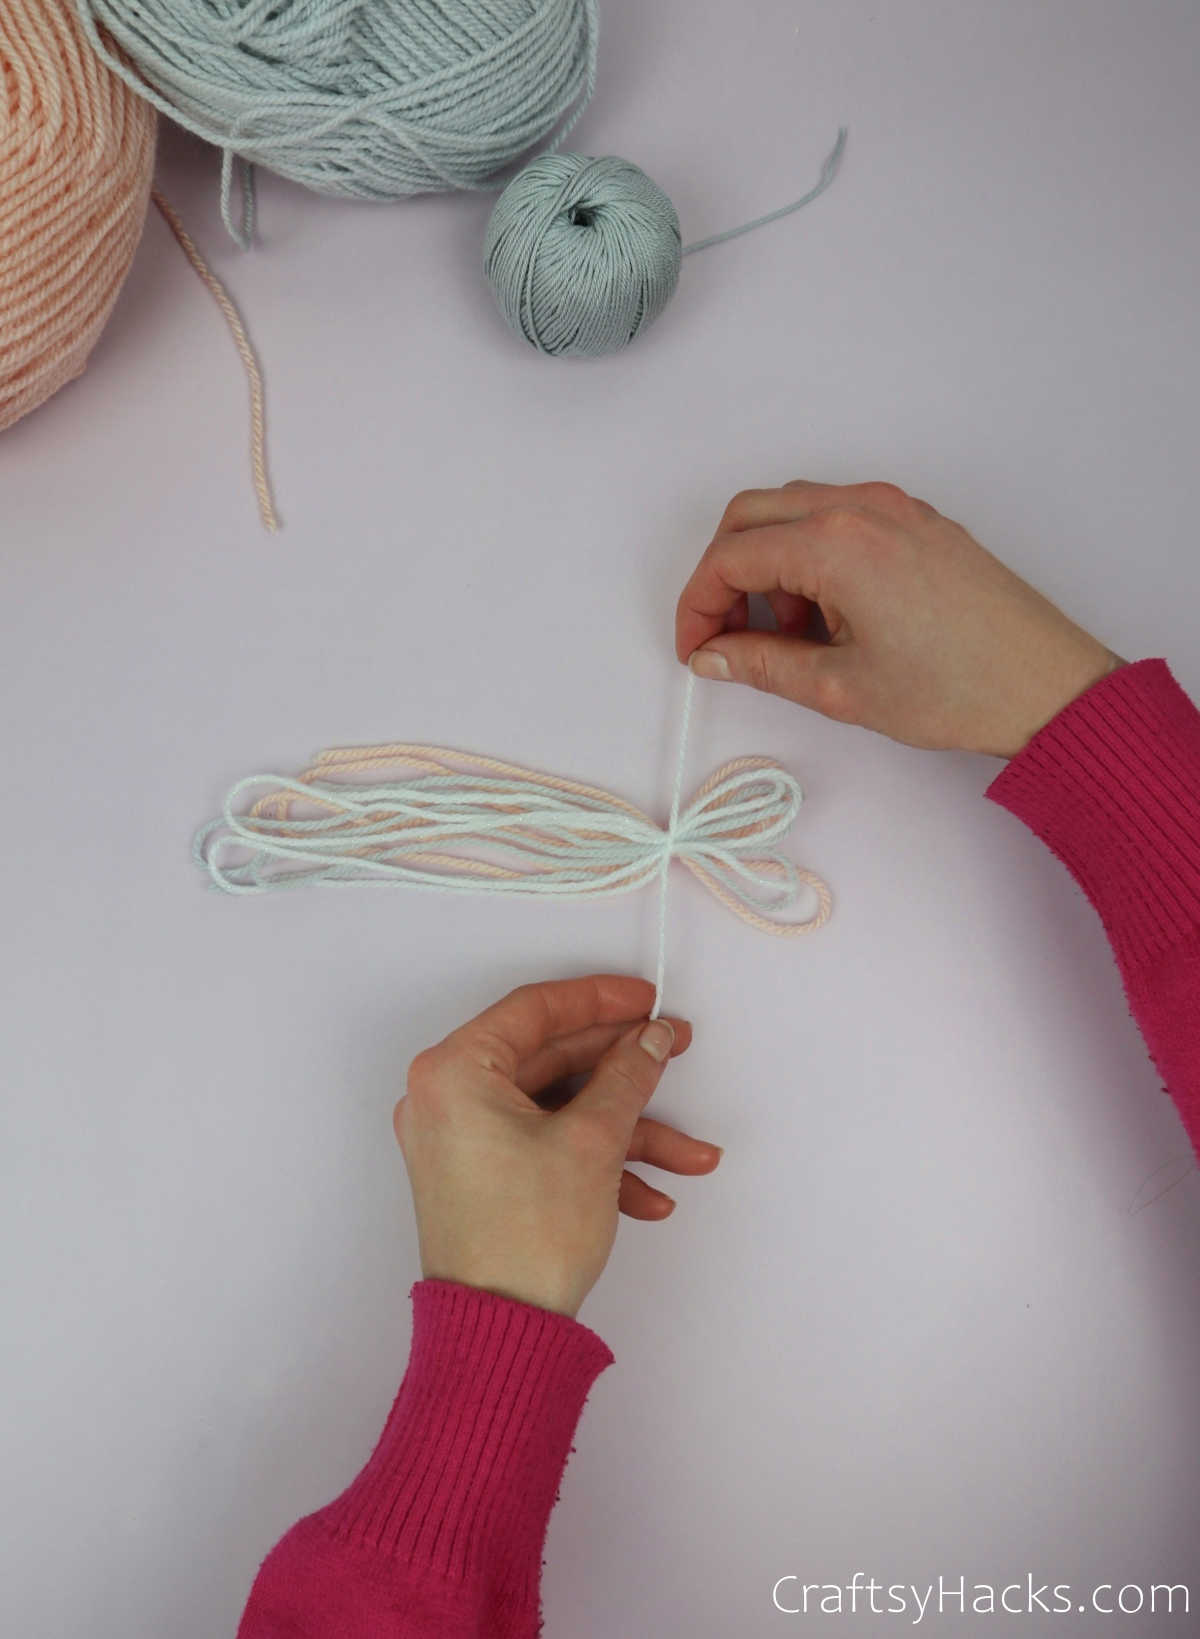 knotting end of yarn